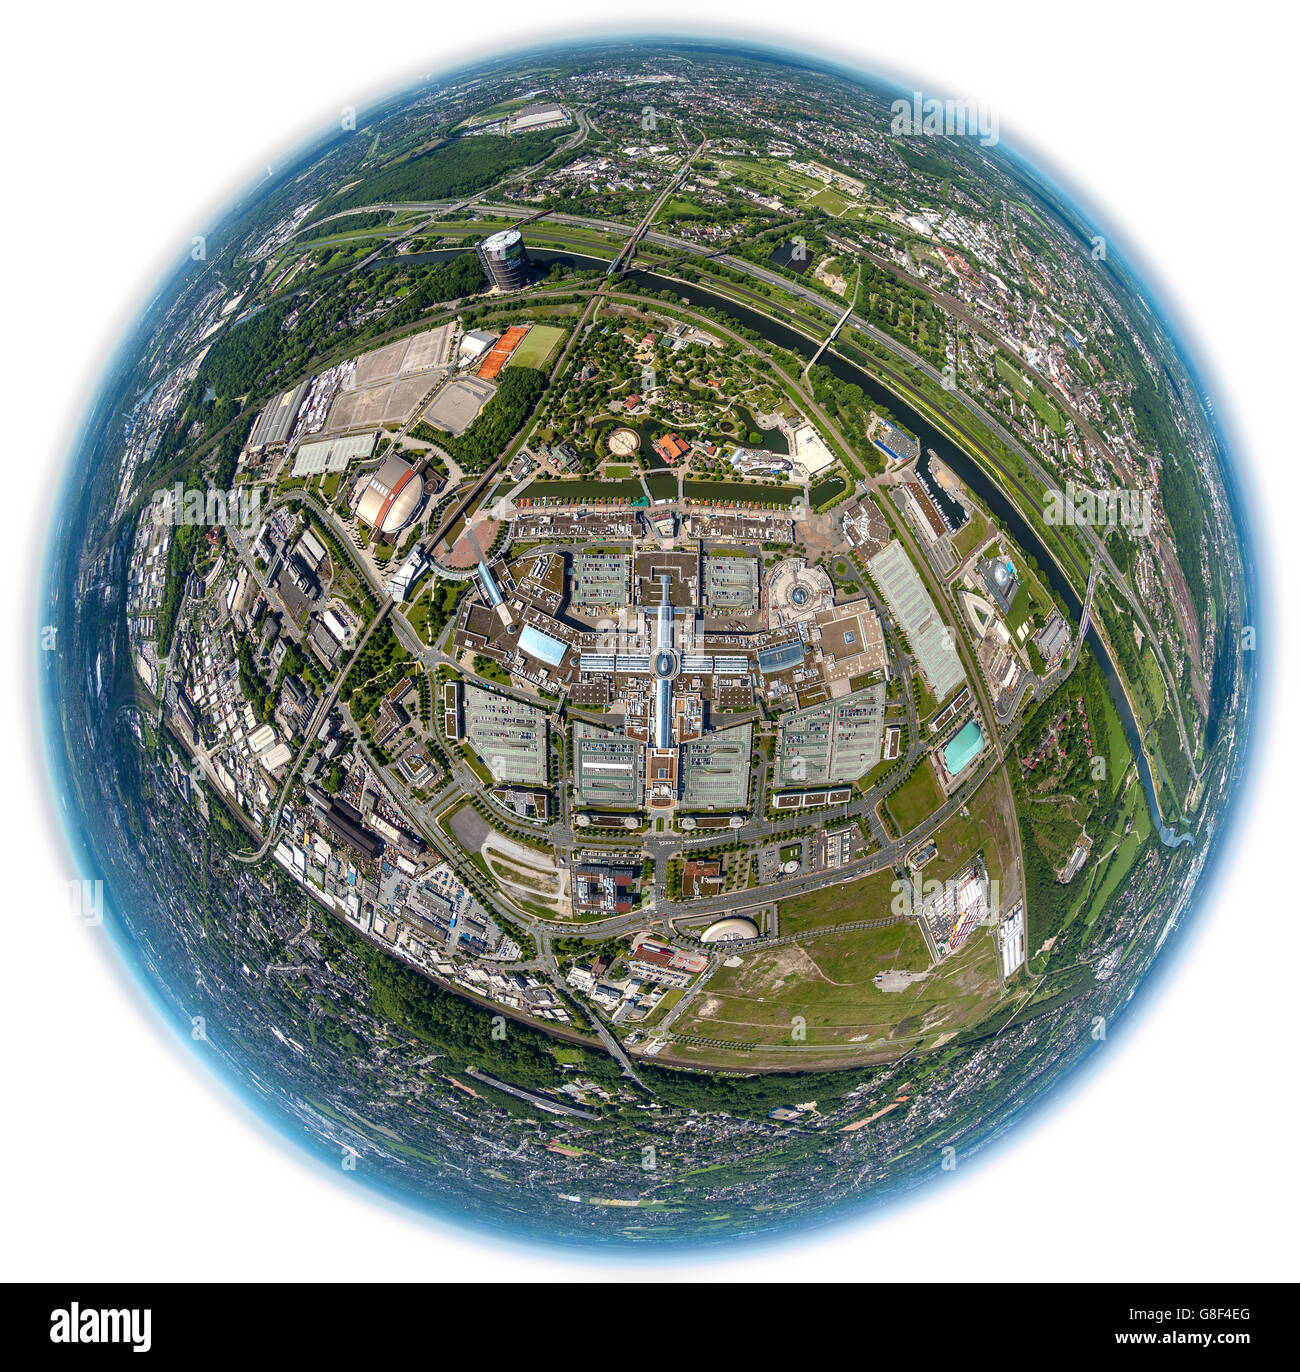 Aerial view, fisheye optics, fisheye lens, Centro Oberhausen, new center, shopping center, promenade, parking, tourism, - Stock Image